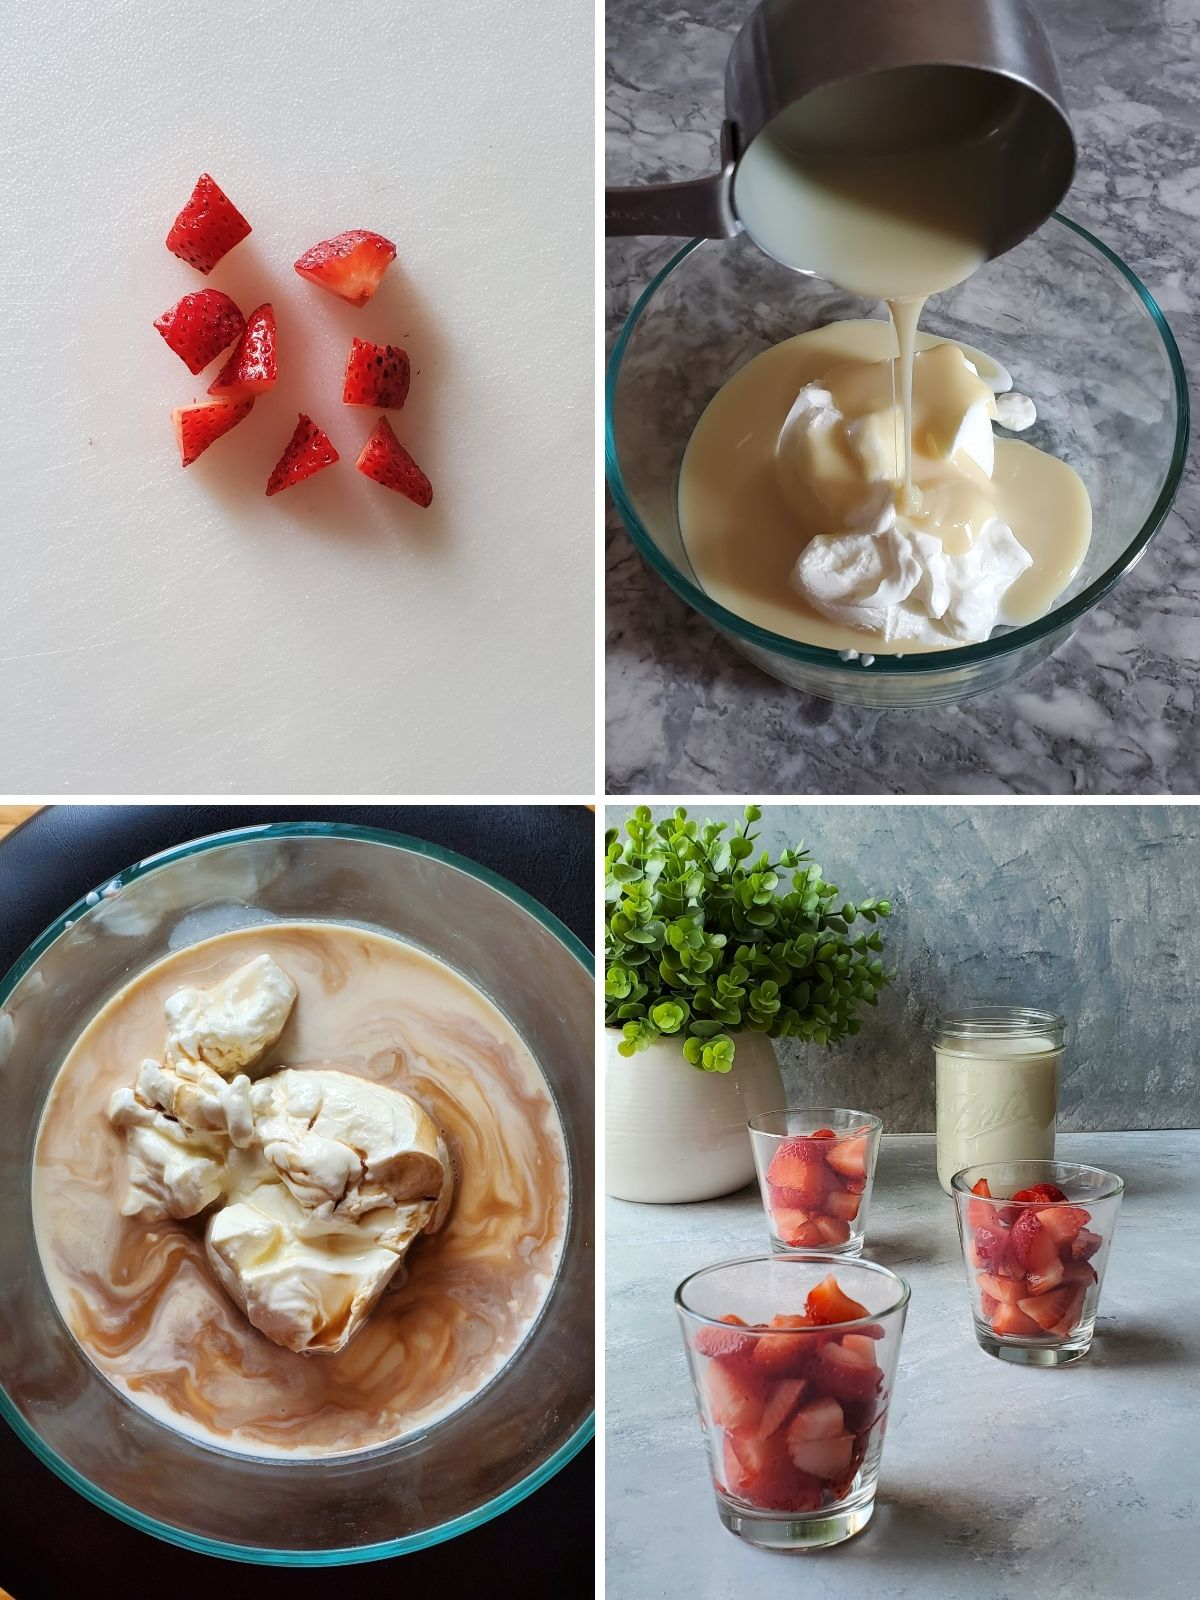 4 pictures of the step by step process of how to make fresas con crema